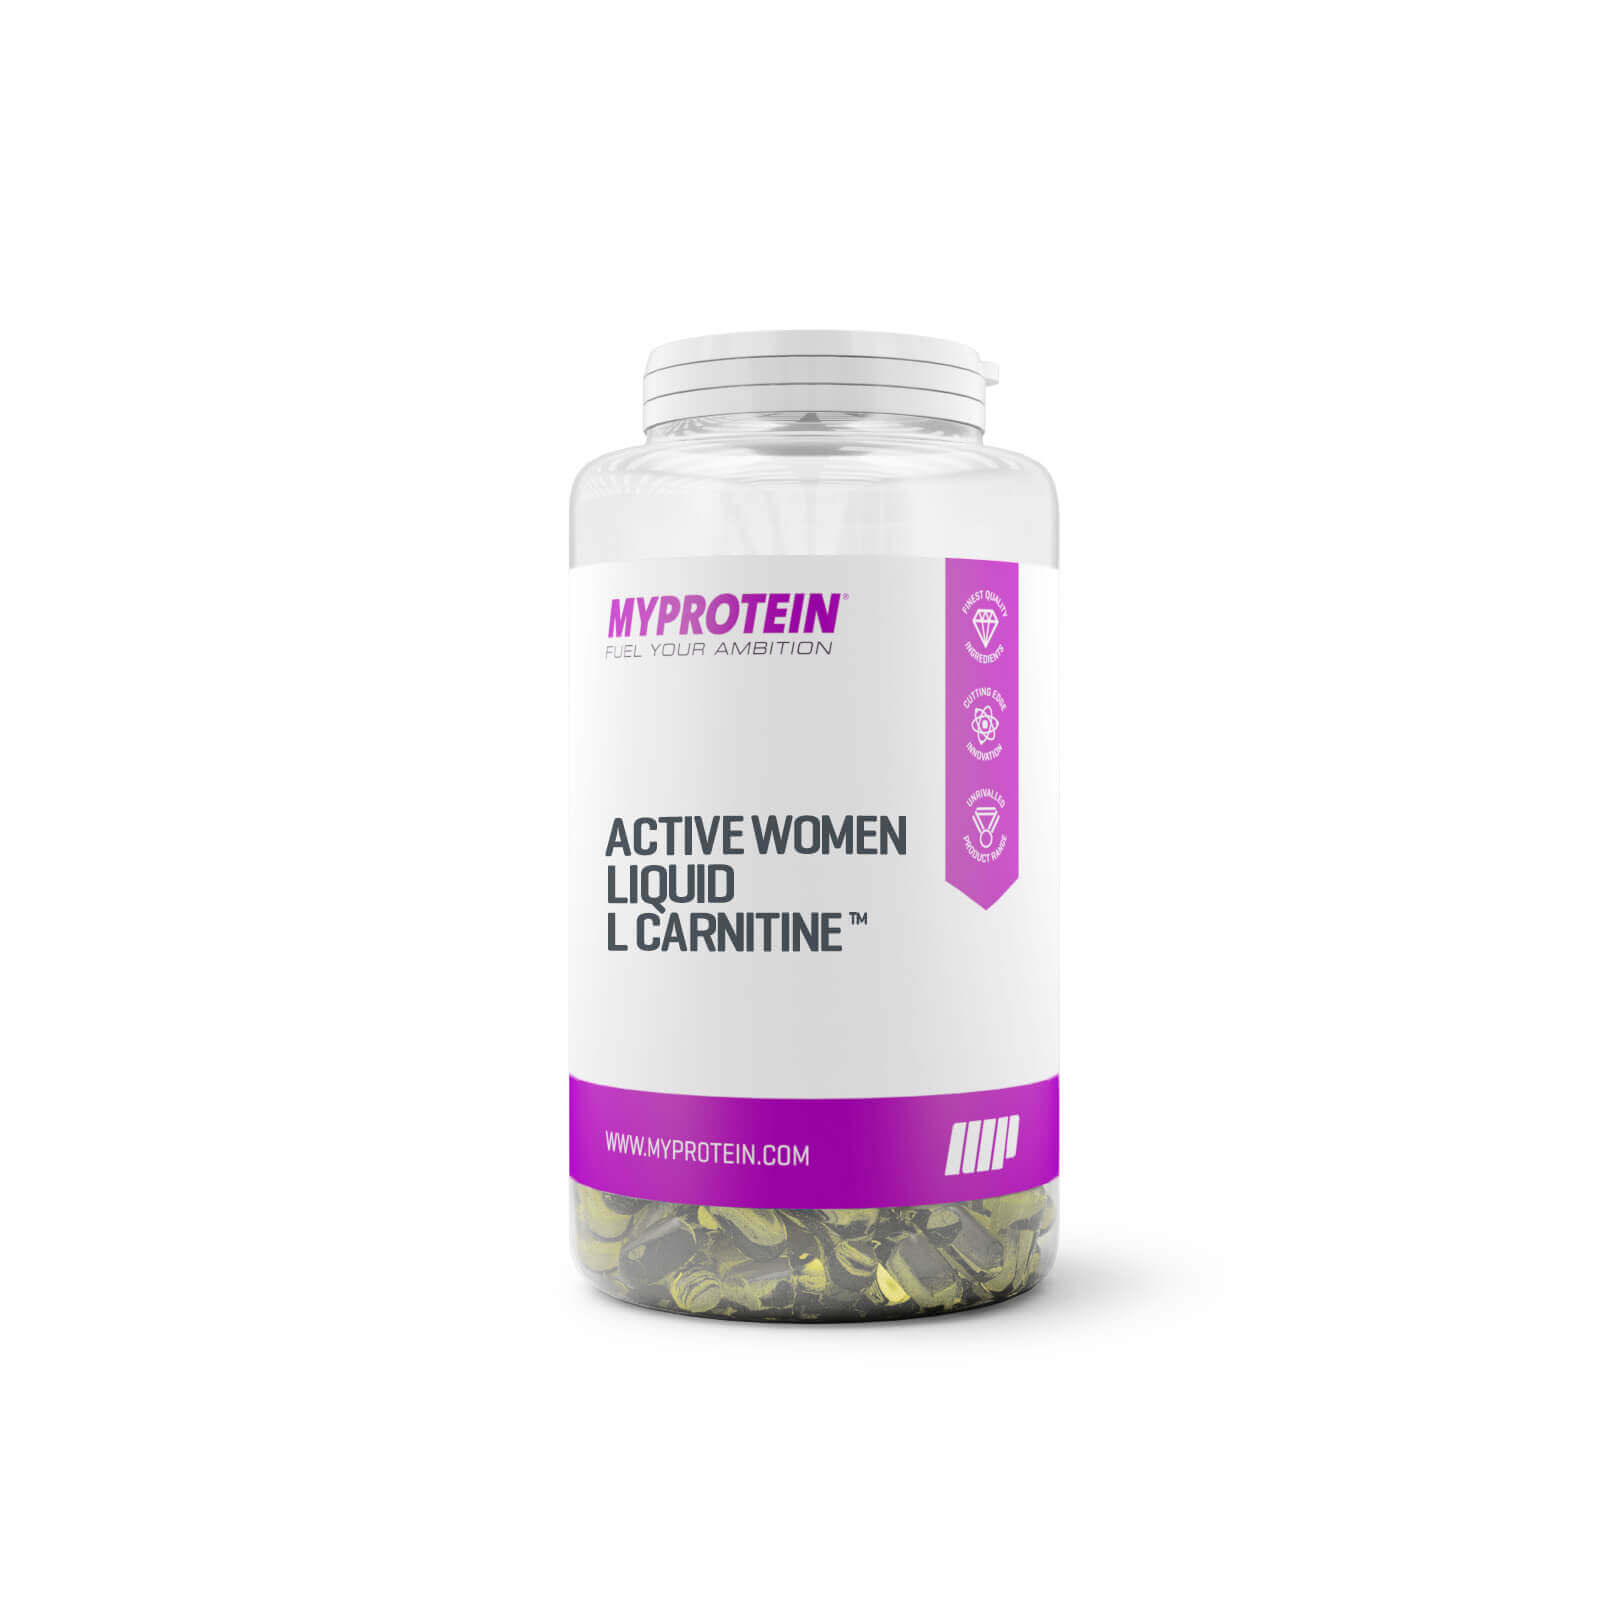 Active Women Liquid L-Carnitine Capsules